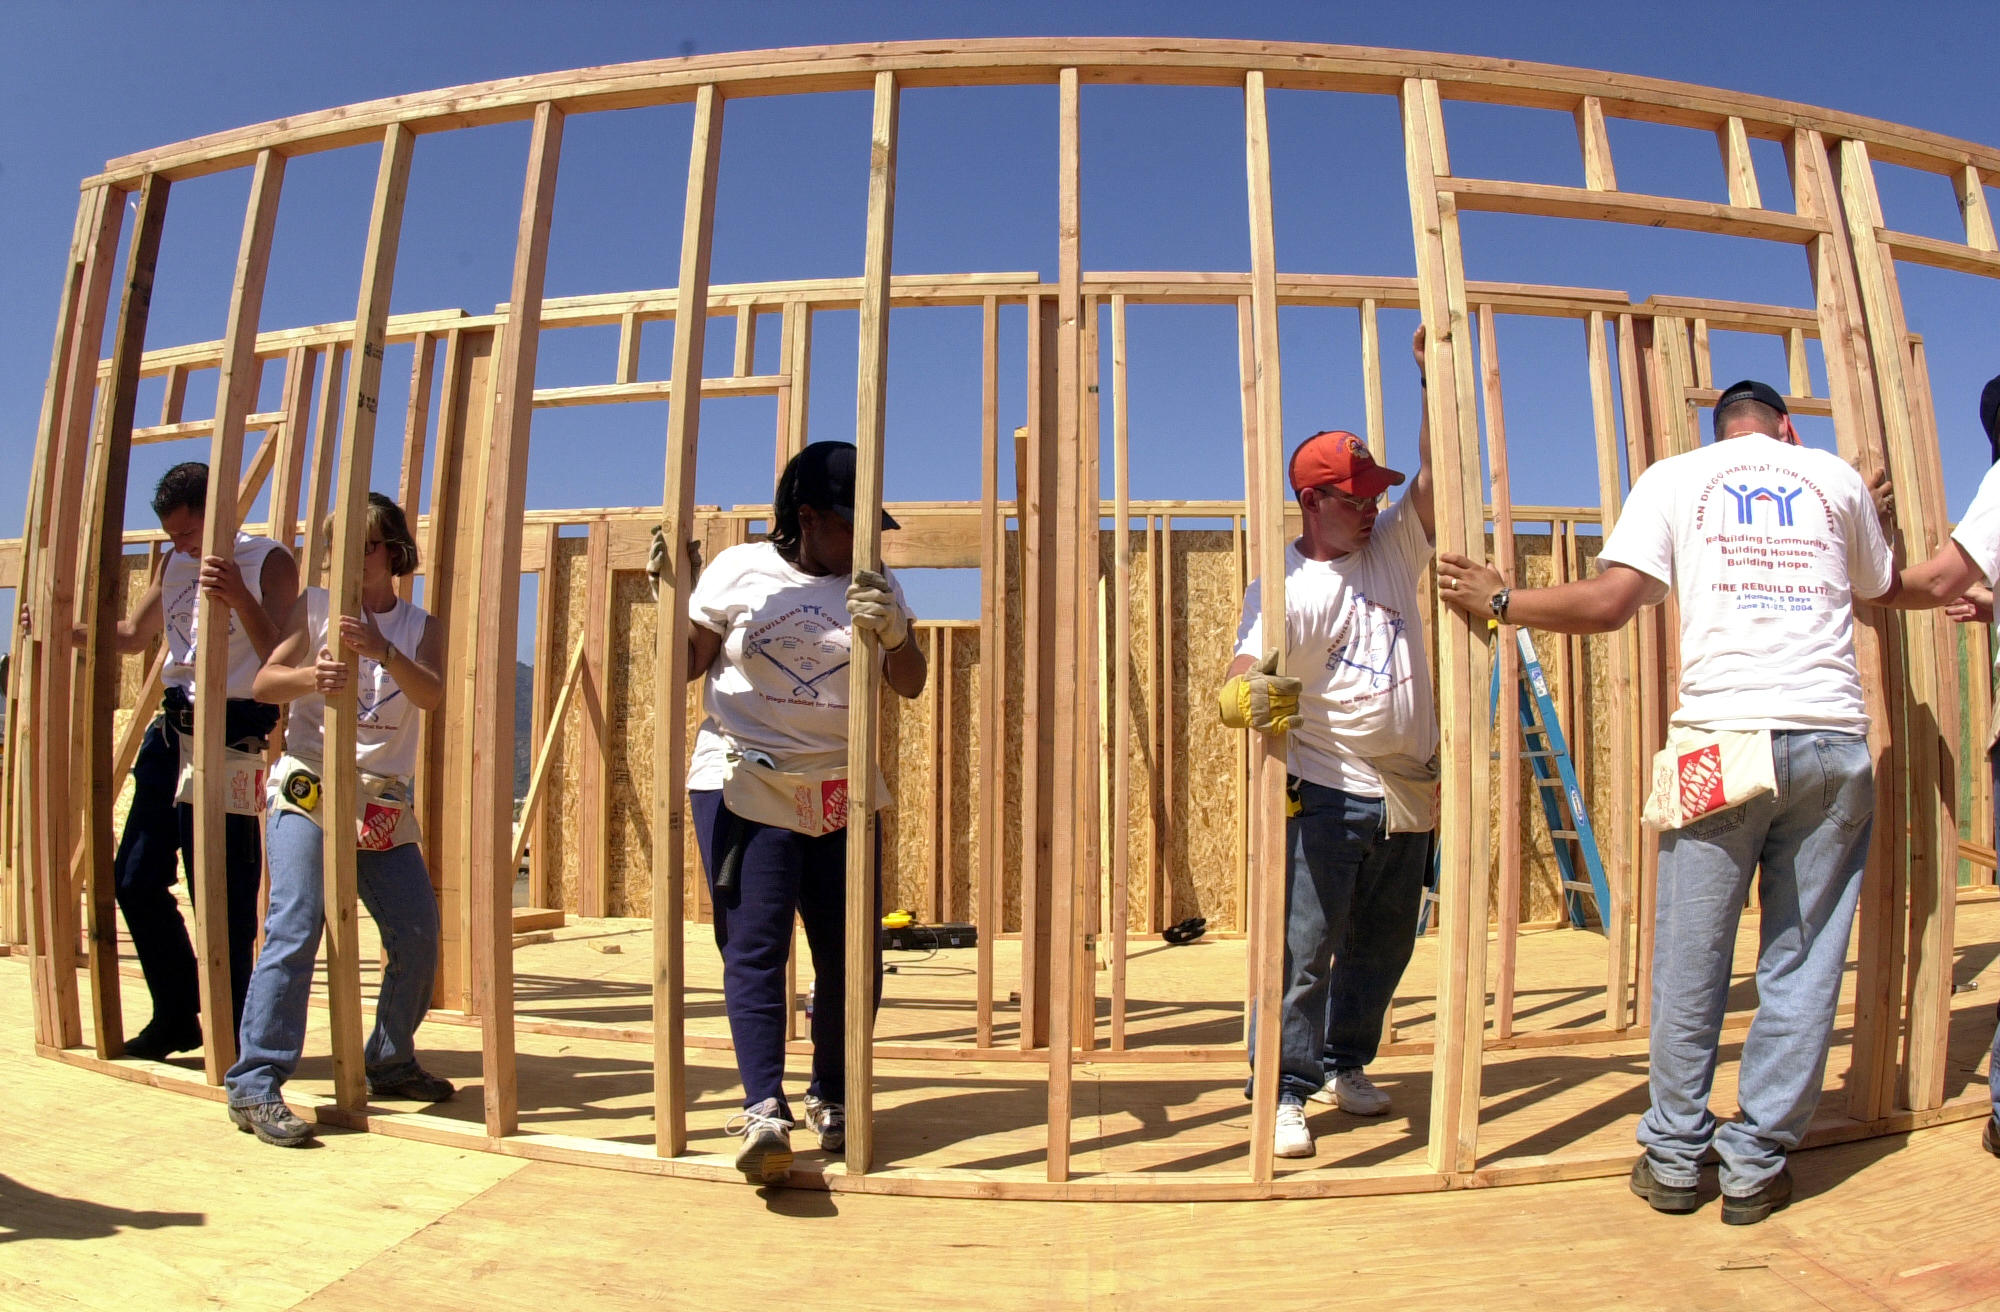 About Abilene Habitat For Humanity Bringing People Together To